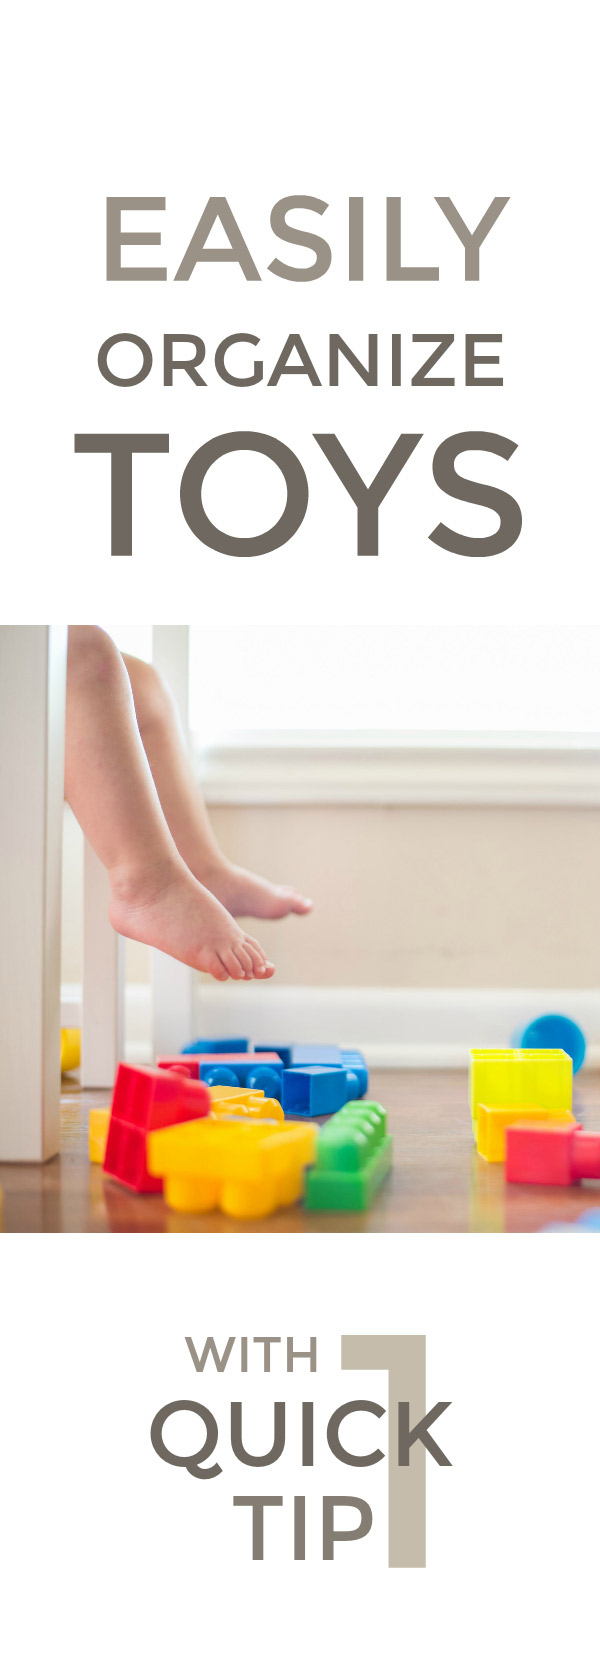 Easily organize kids toys with this genius DIY dollar store hack. It may be a budget solution - cheaper than IKEA - but it's a brilliant way to tame the clutter of soft toys, bricks, trains and more in the living room, bedroom or playroom. And even works in small spaces. #organize #clutter #storage #playroom #toys